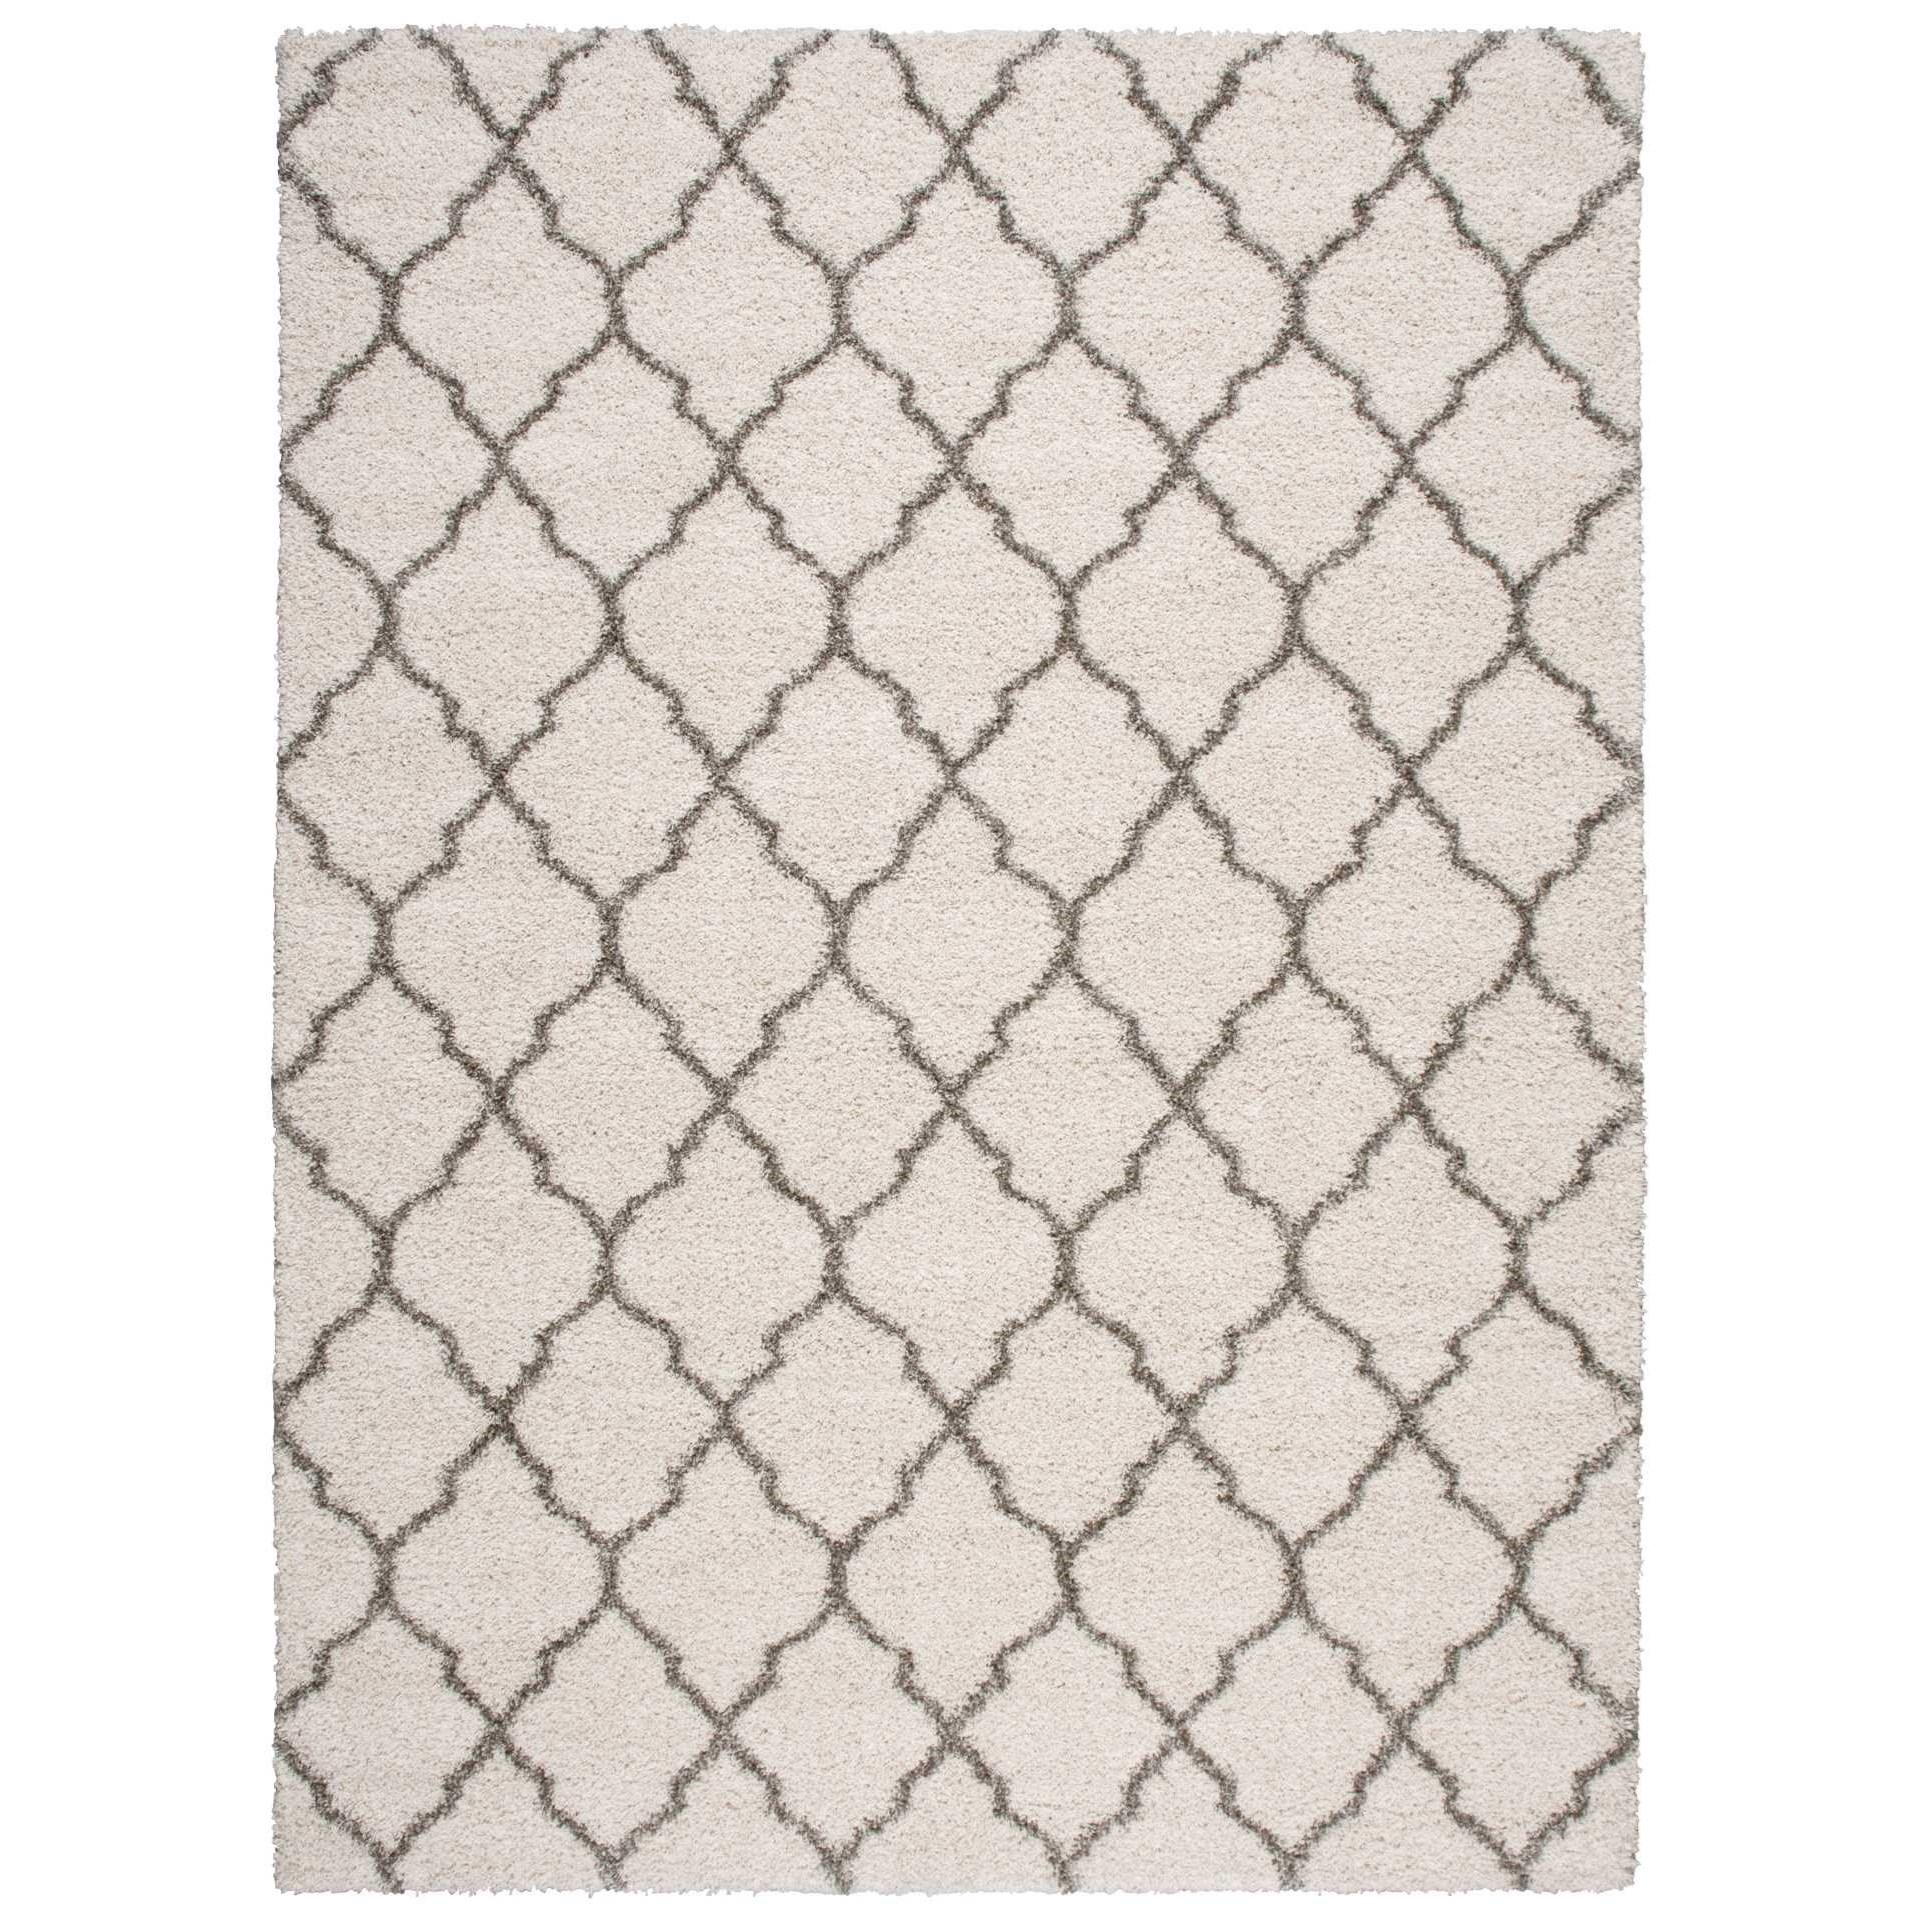 Amore 10' x 13' Cream Rectangle Rug by Nourison at Sprintz Furniture